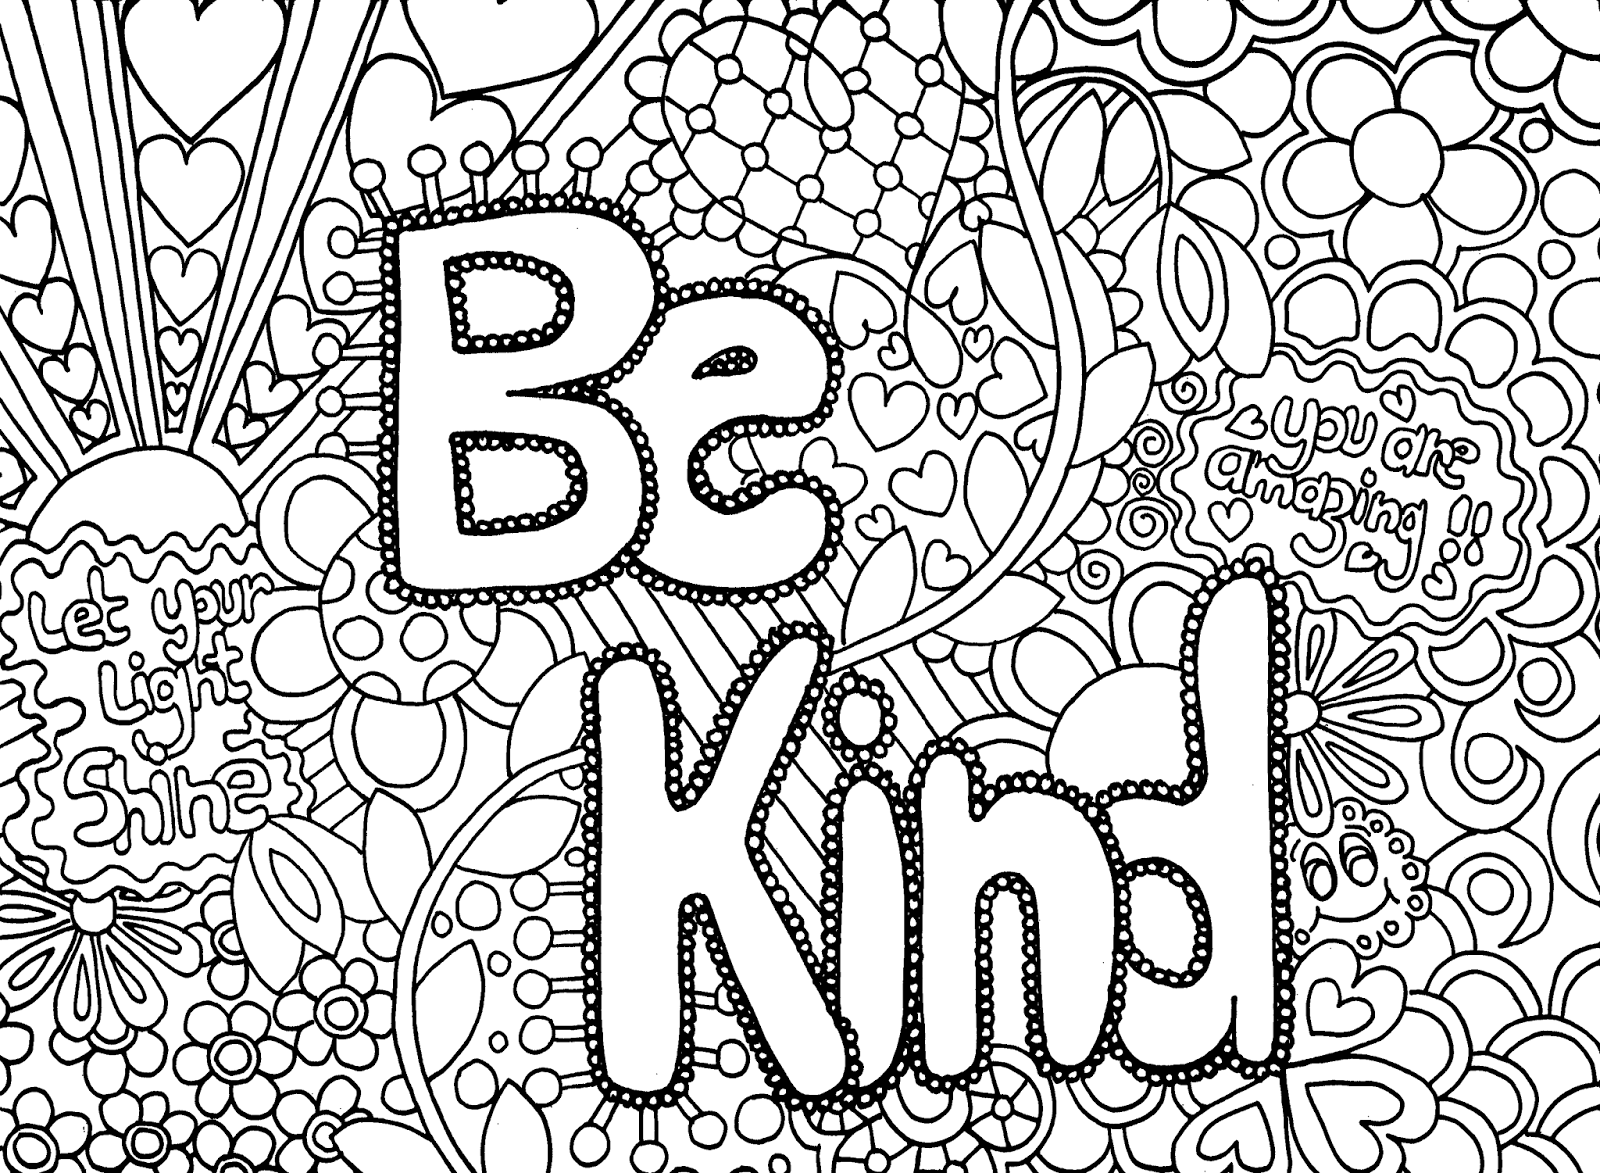 Free Coloring Pages For Adults Printable Hard To Color Abstract ...